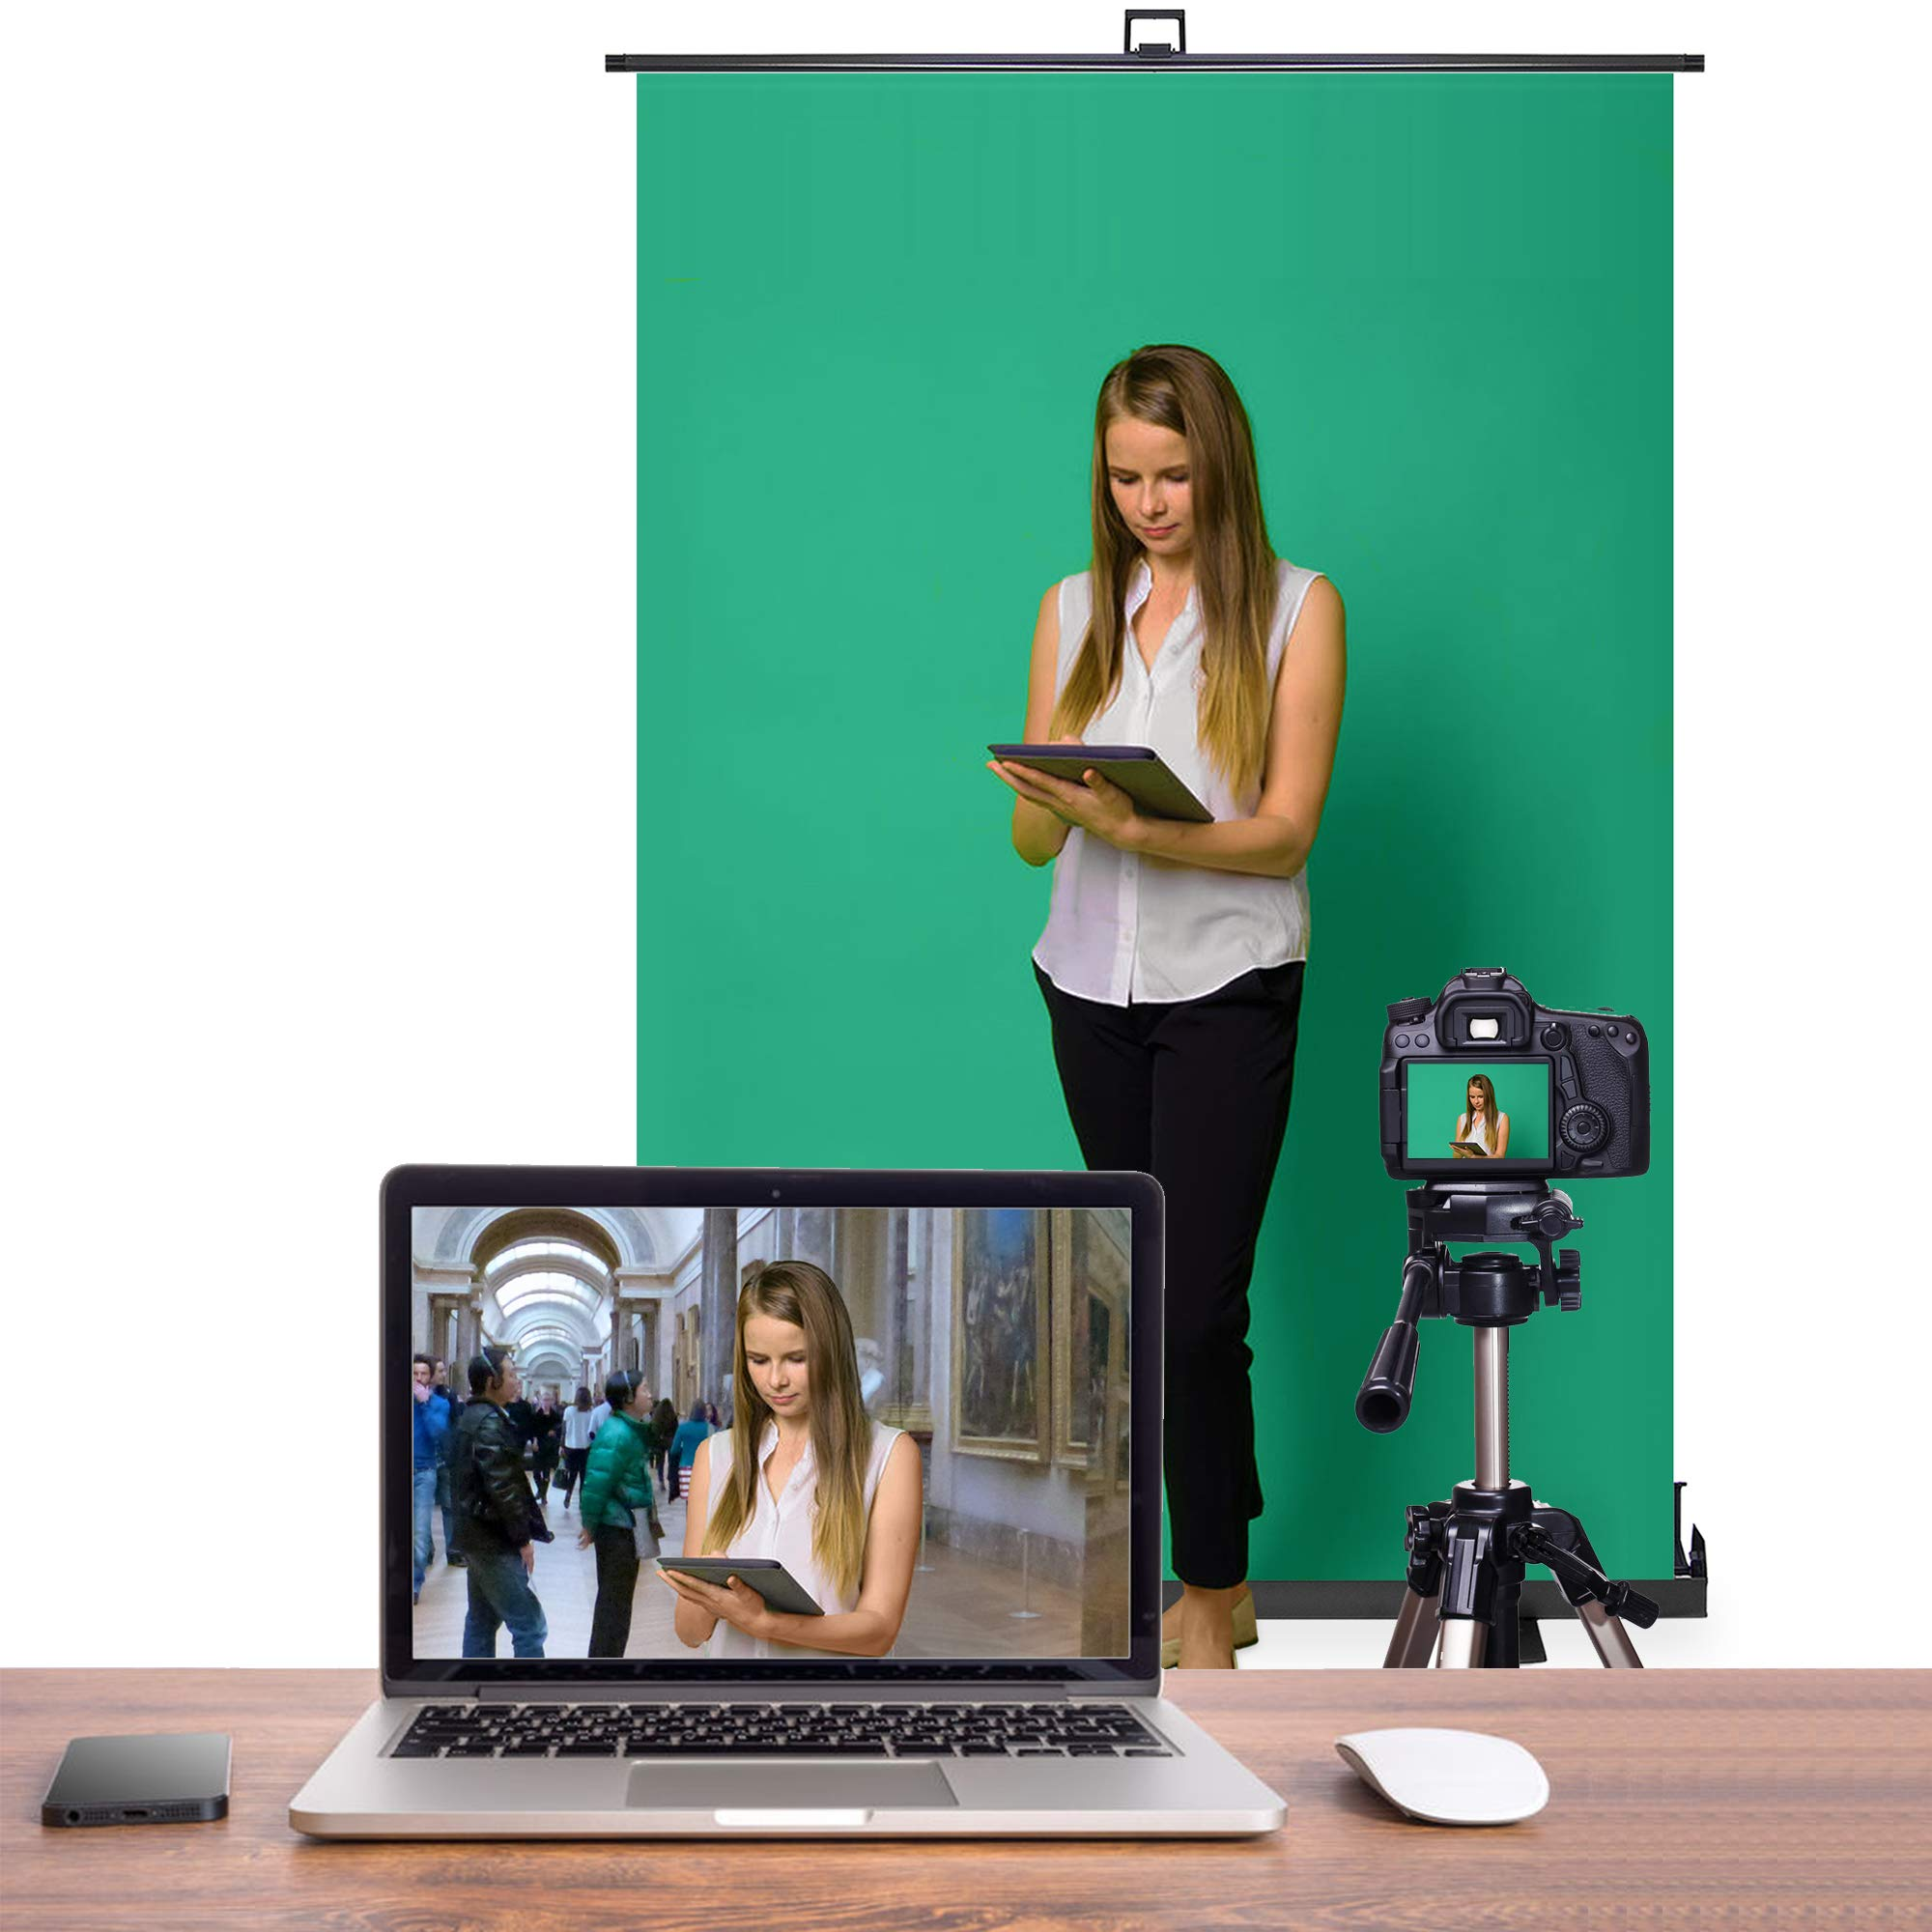 KHOMO GEAR Jumbo Size 55'' x 82'' Green Screen Collapsible Pull-Up Extra Large Streaming Portable Backdrop Setup with Auto-Locking Frame by KHOMO GEAR (Image #6)